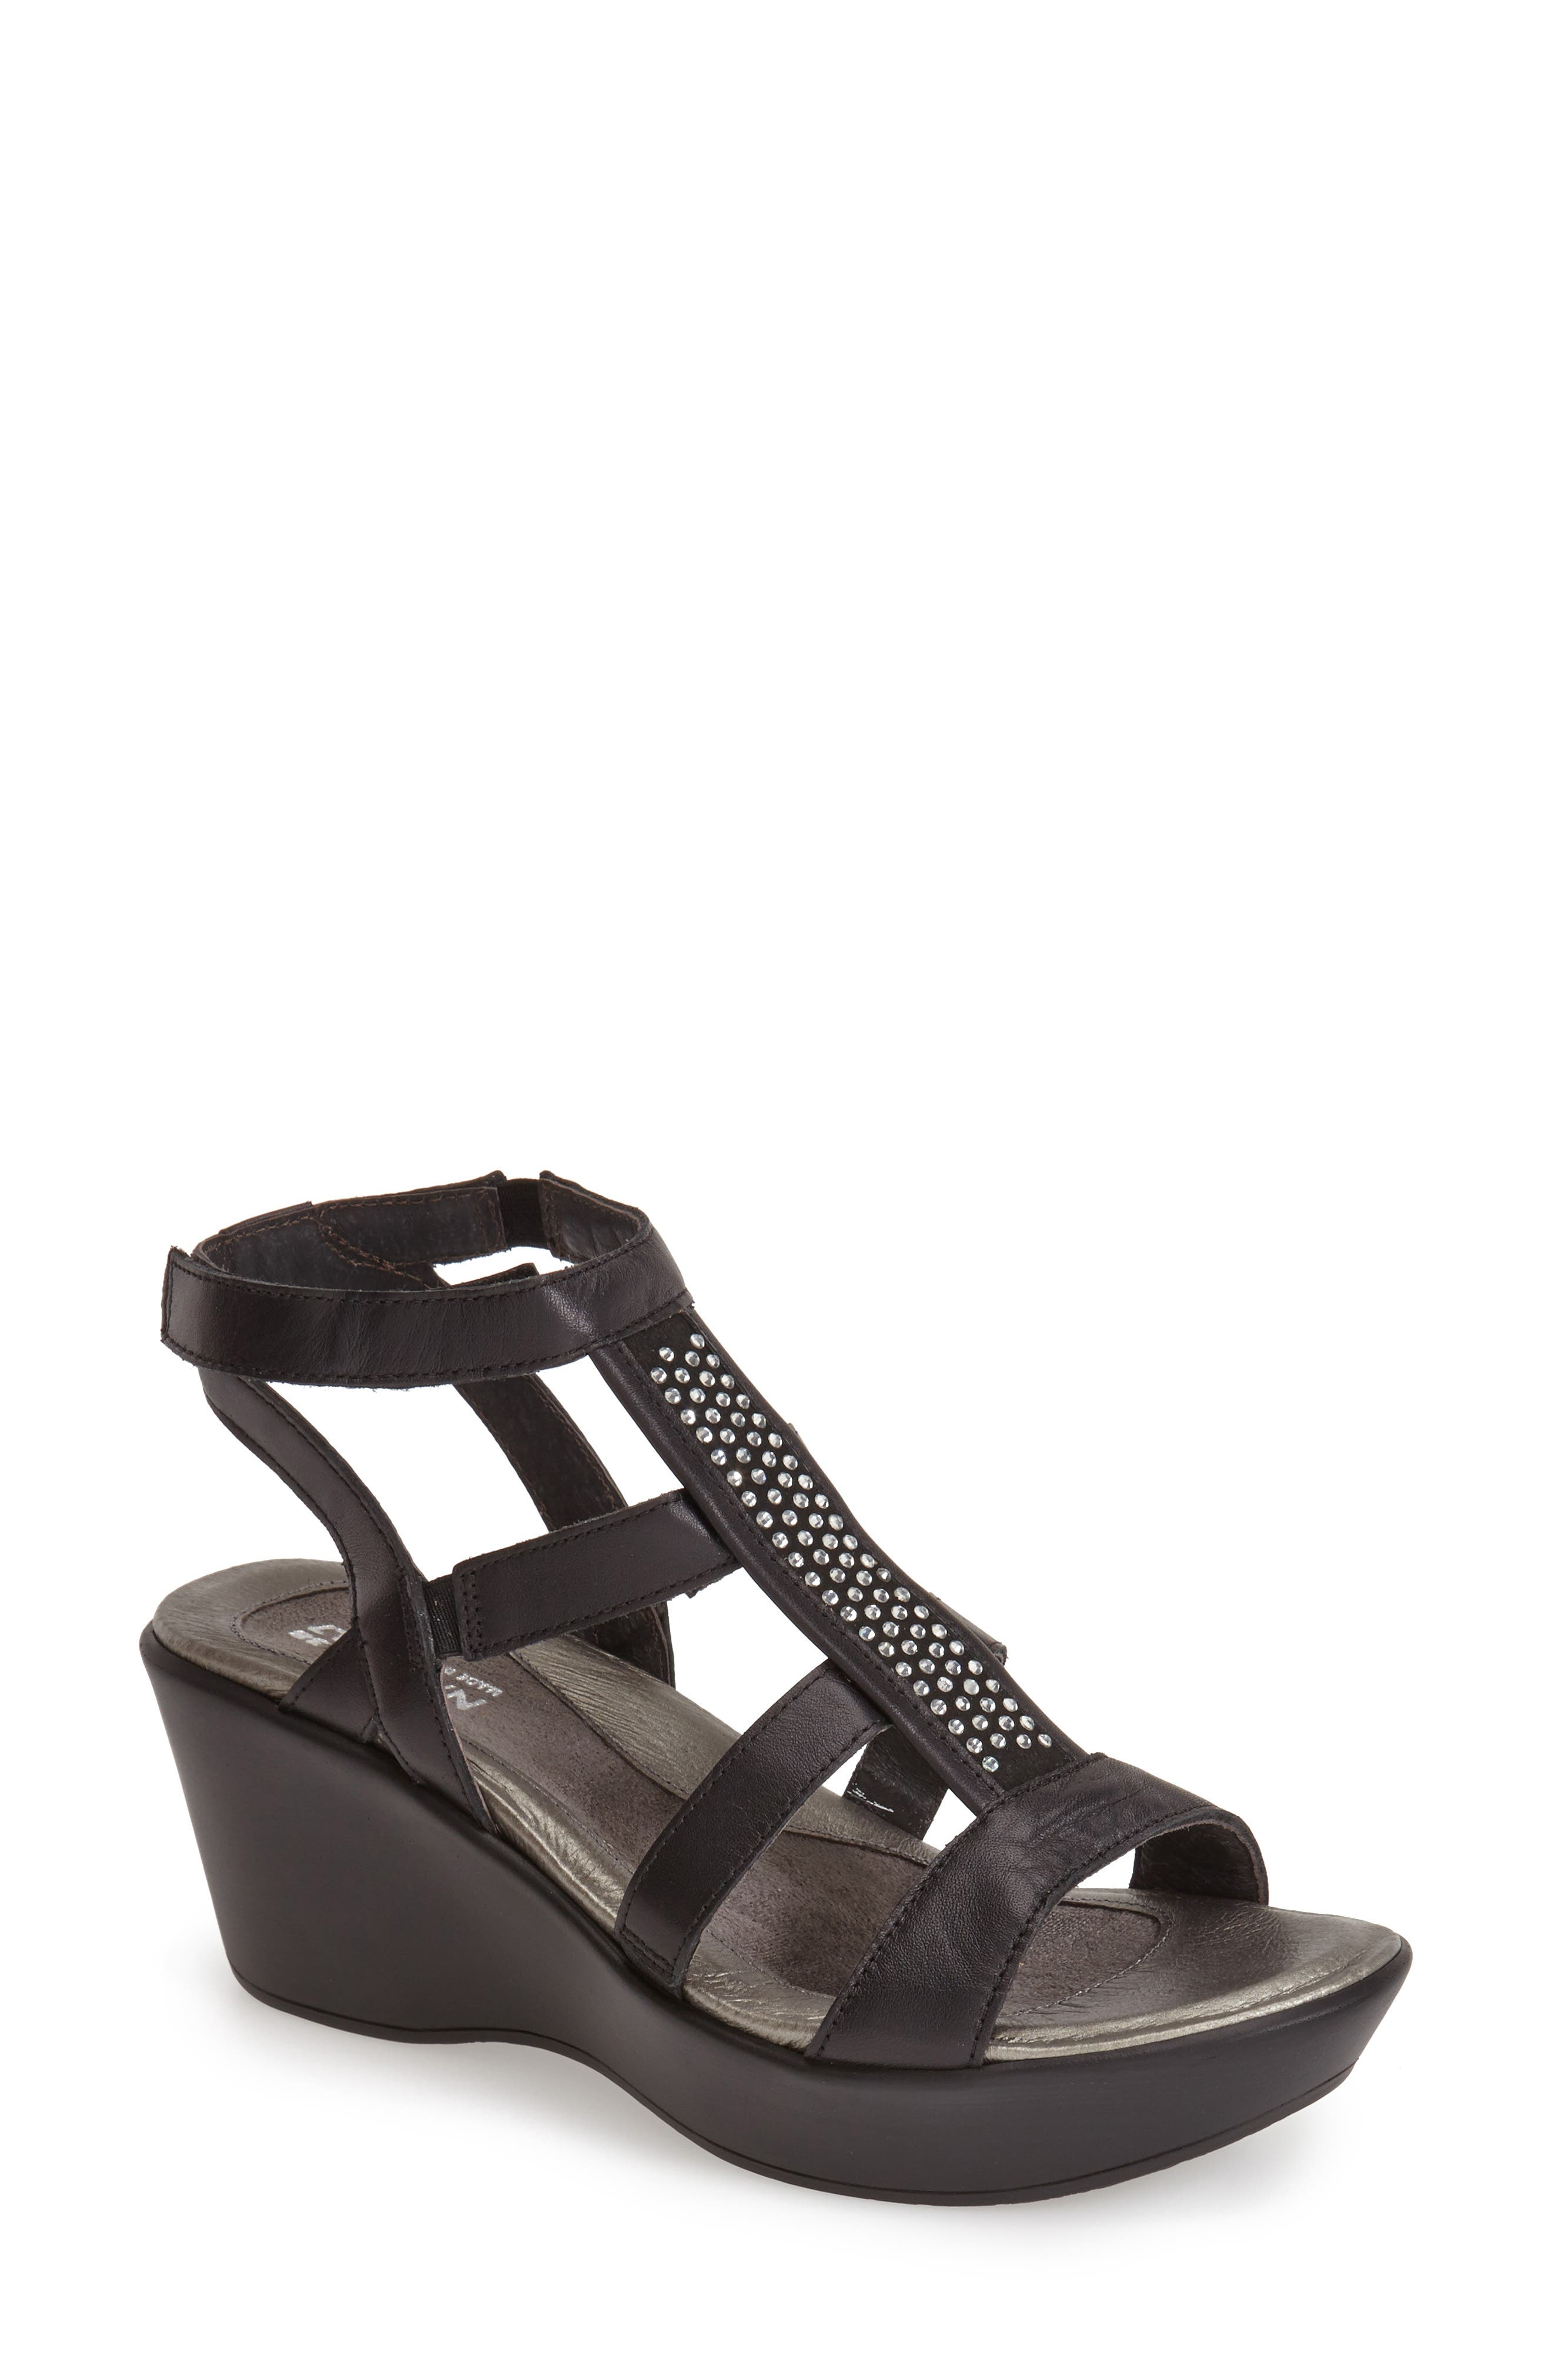 'Mystery' Platform Wedge Sandal,                             Alternate thumbnail 5, color,